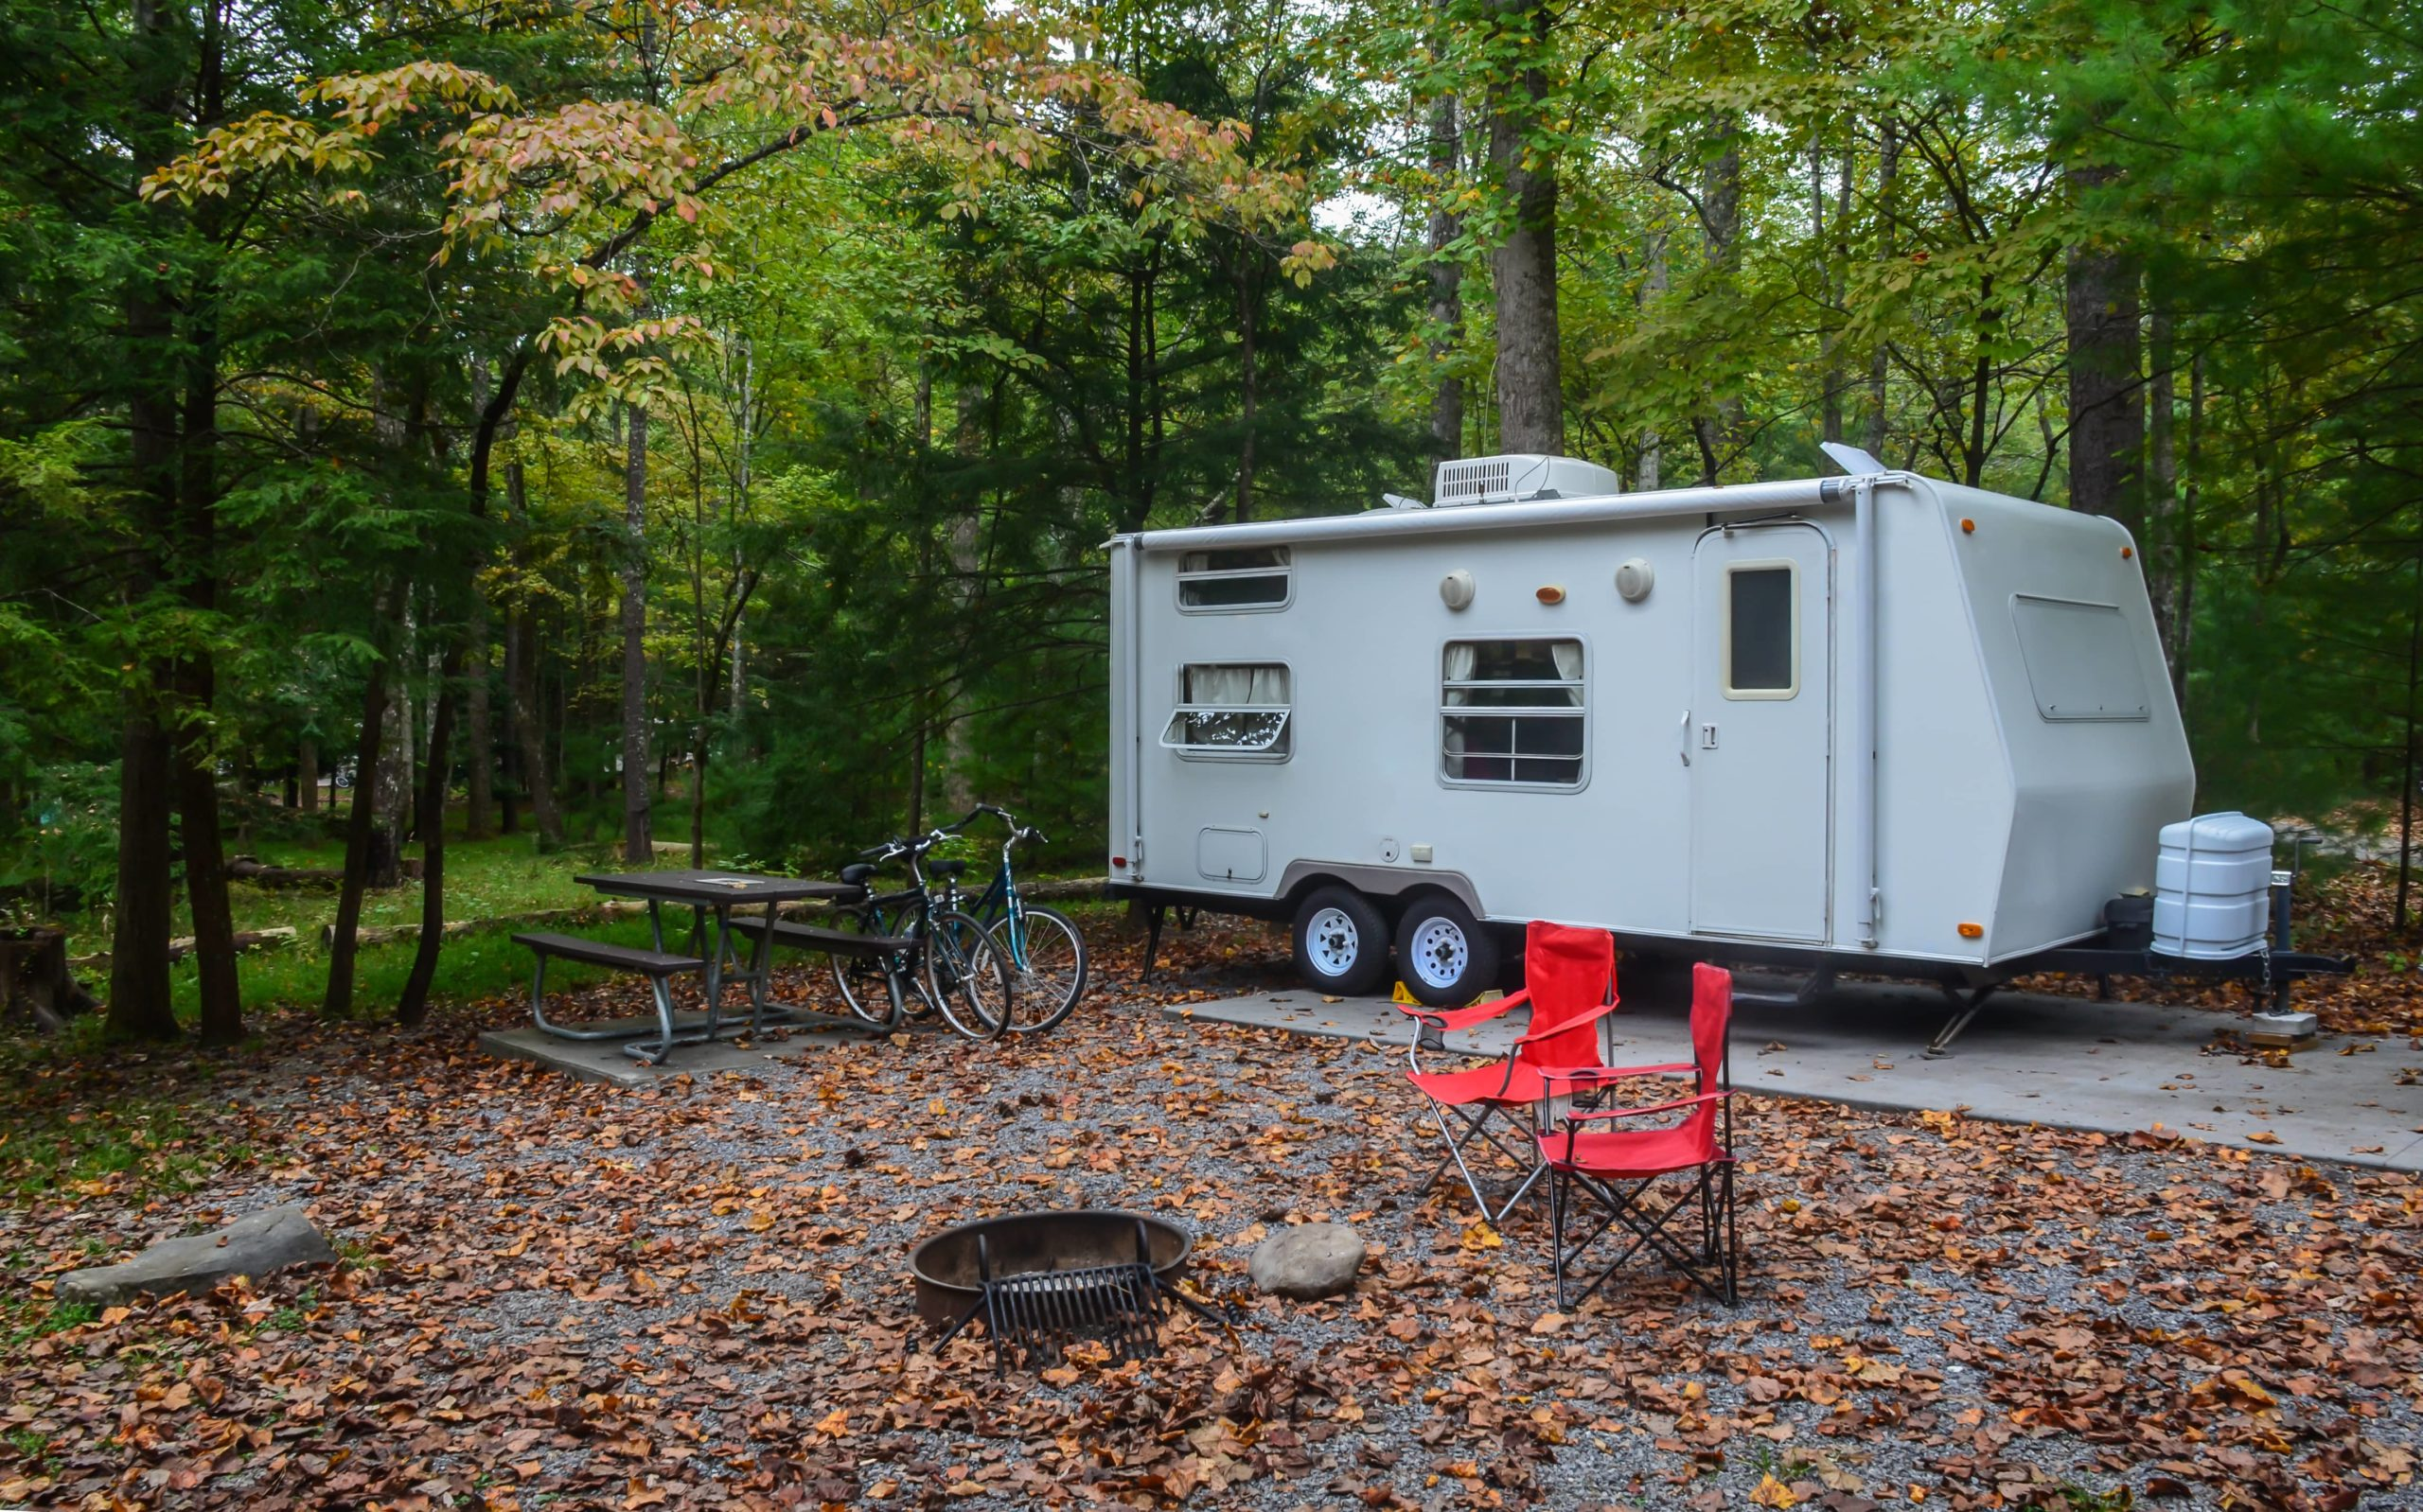 Canada Recreational Vehicle Tank Refills and Exchanges